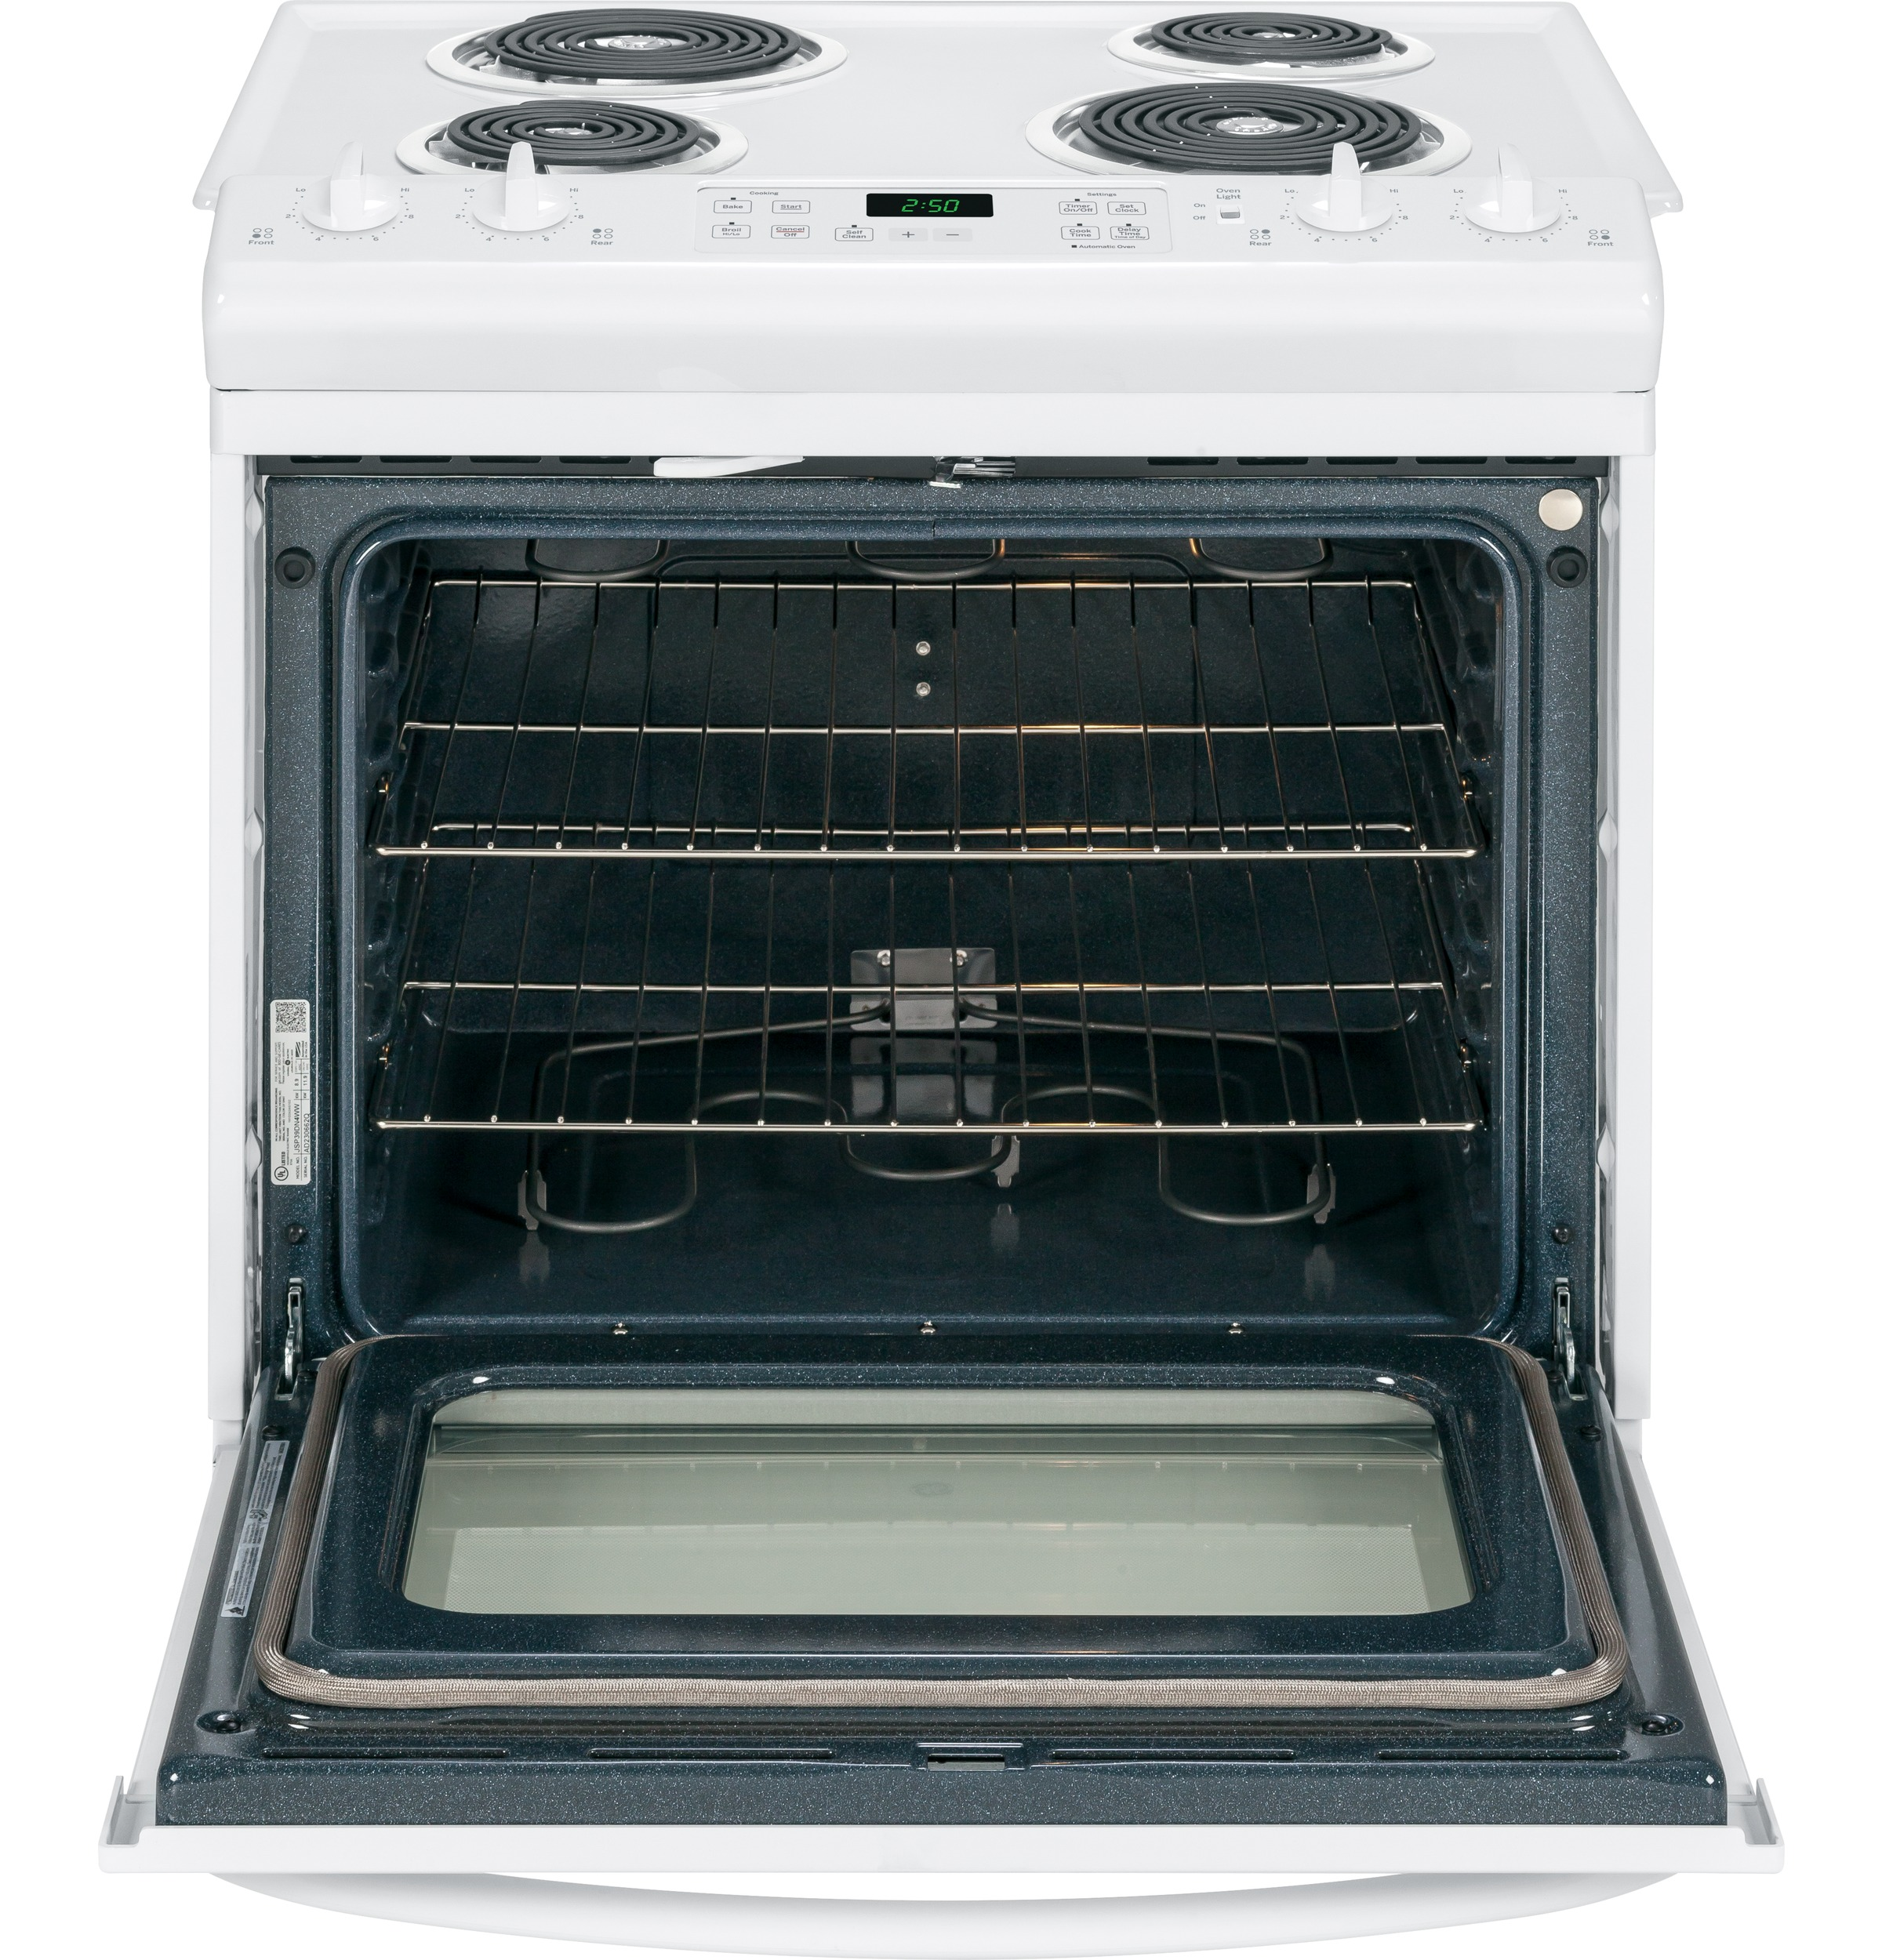 "GE Appliances 30"" Slide-In Electric Range - White"